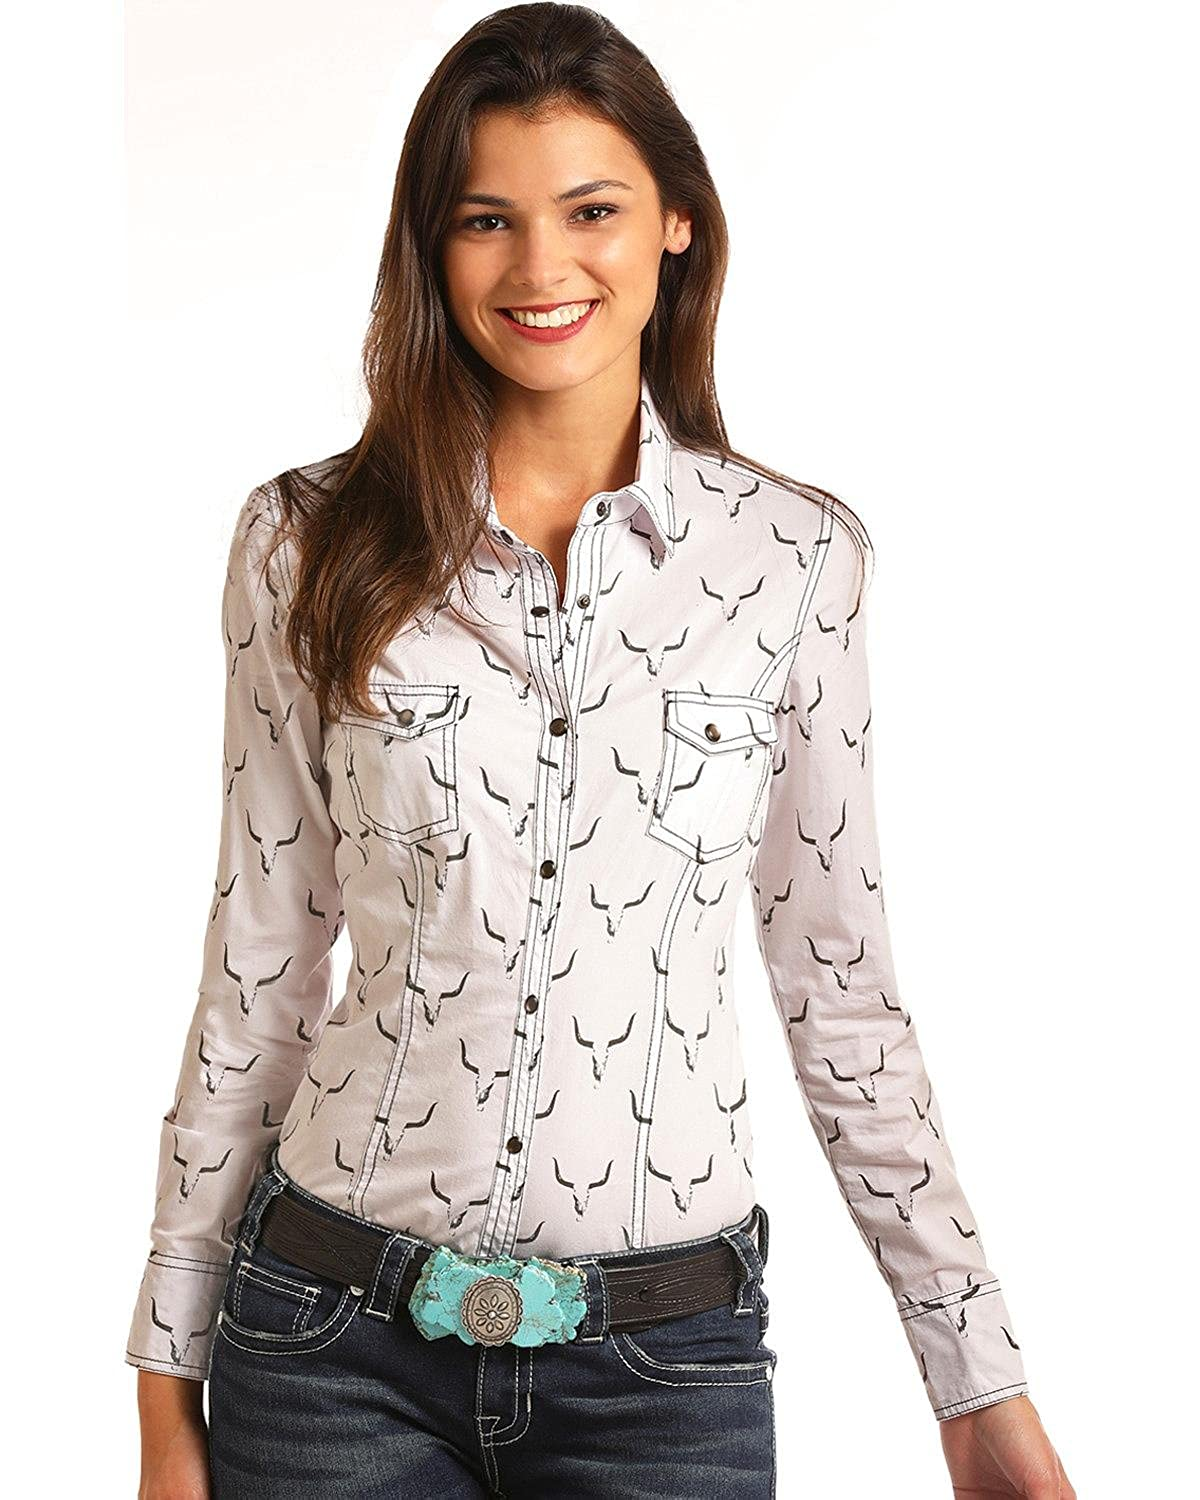 Amazon Rock Roll Cowgirl Womens And Steer Skull Long Sleeve